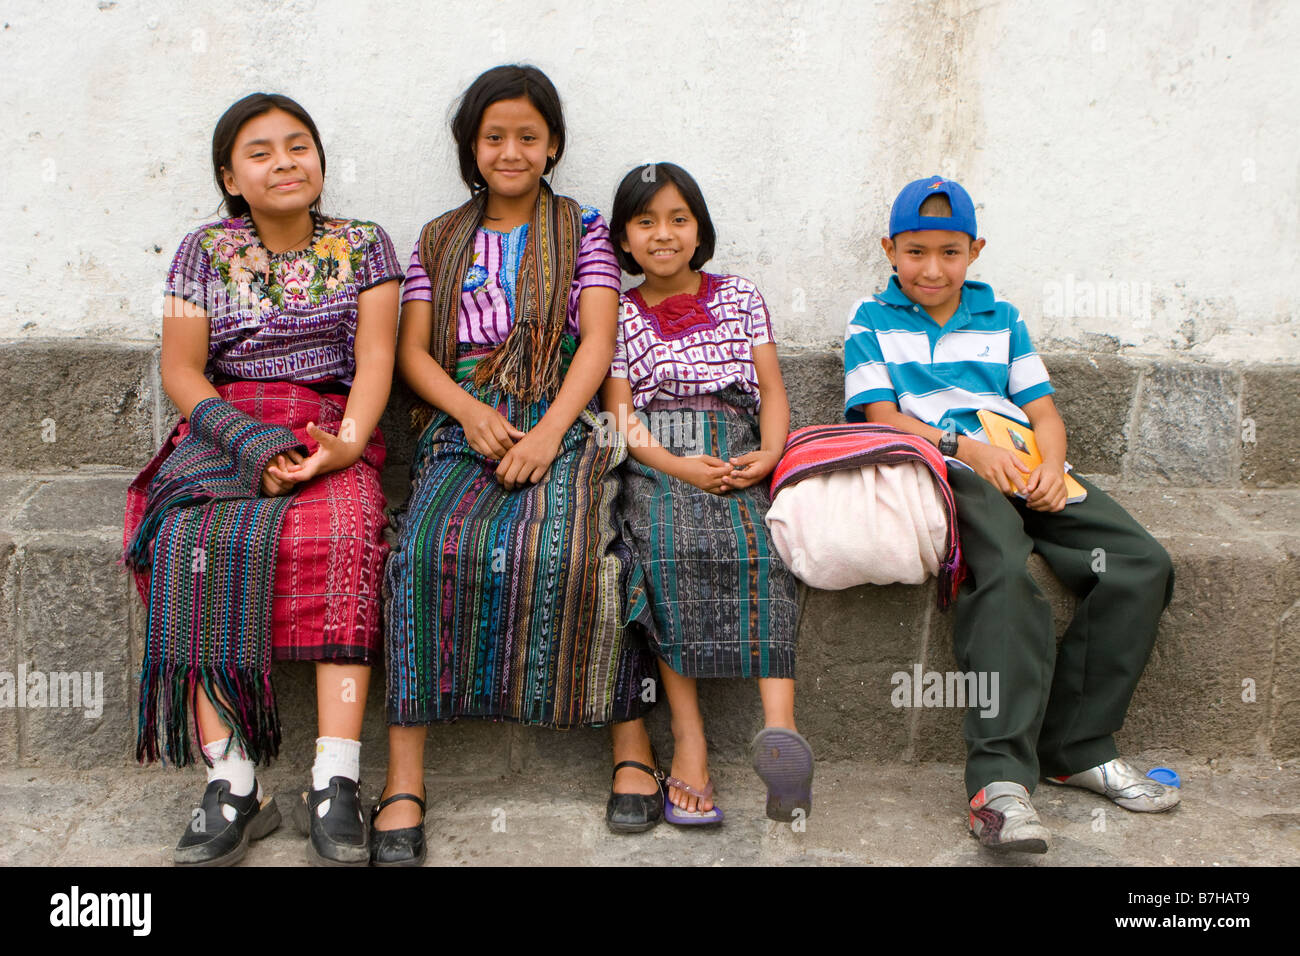 Guatemalan children in traditional dress relax outside a church in Santiago Atitlan, Guatemala - Stock Image